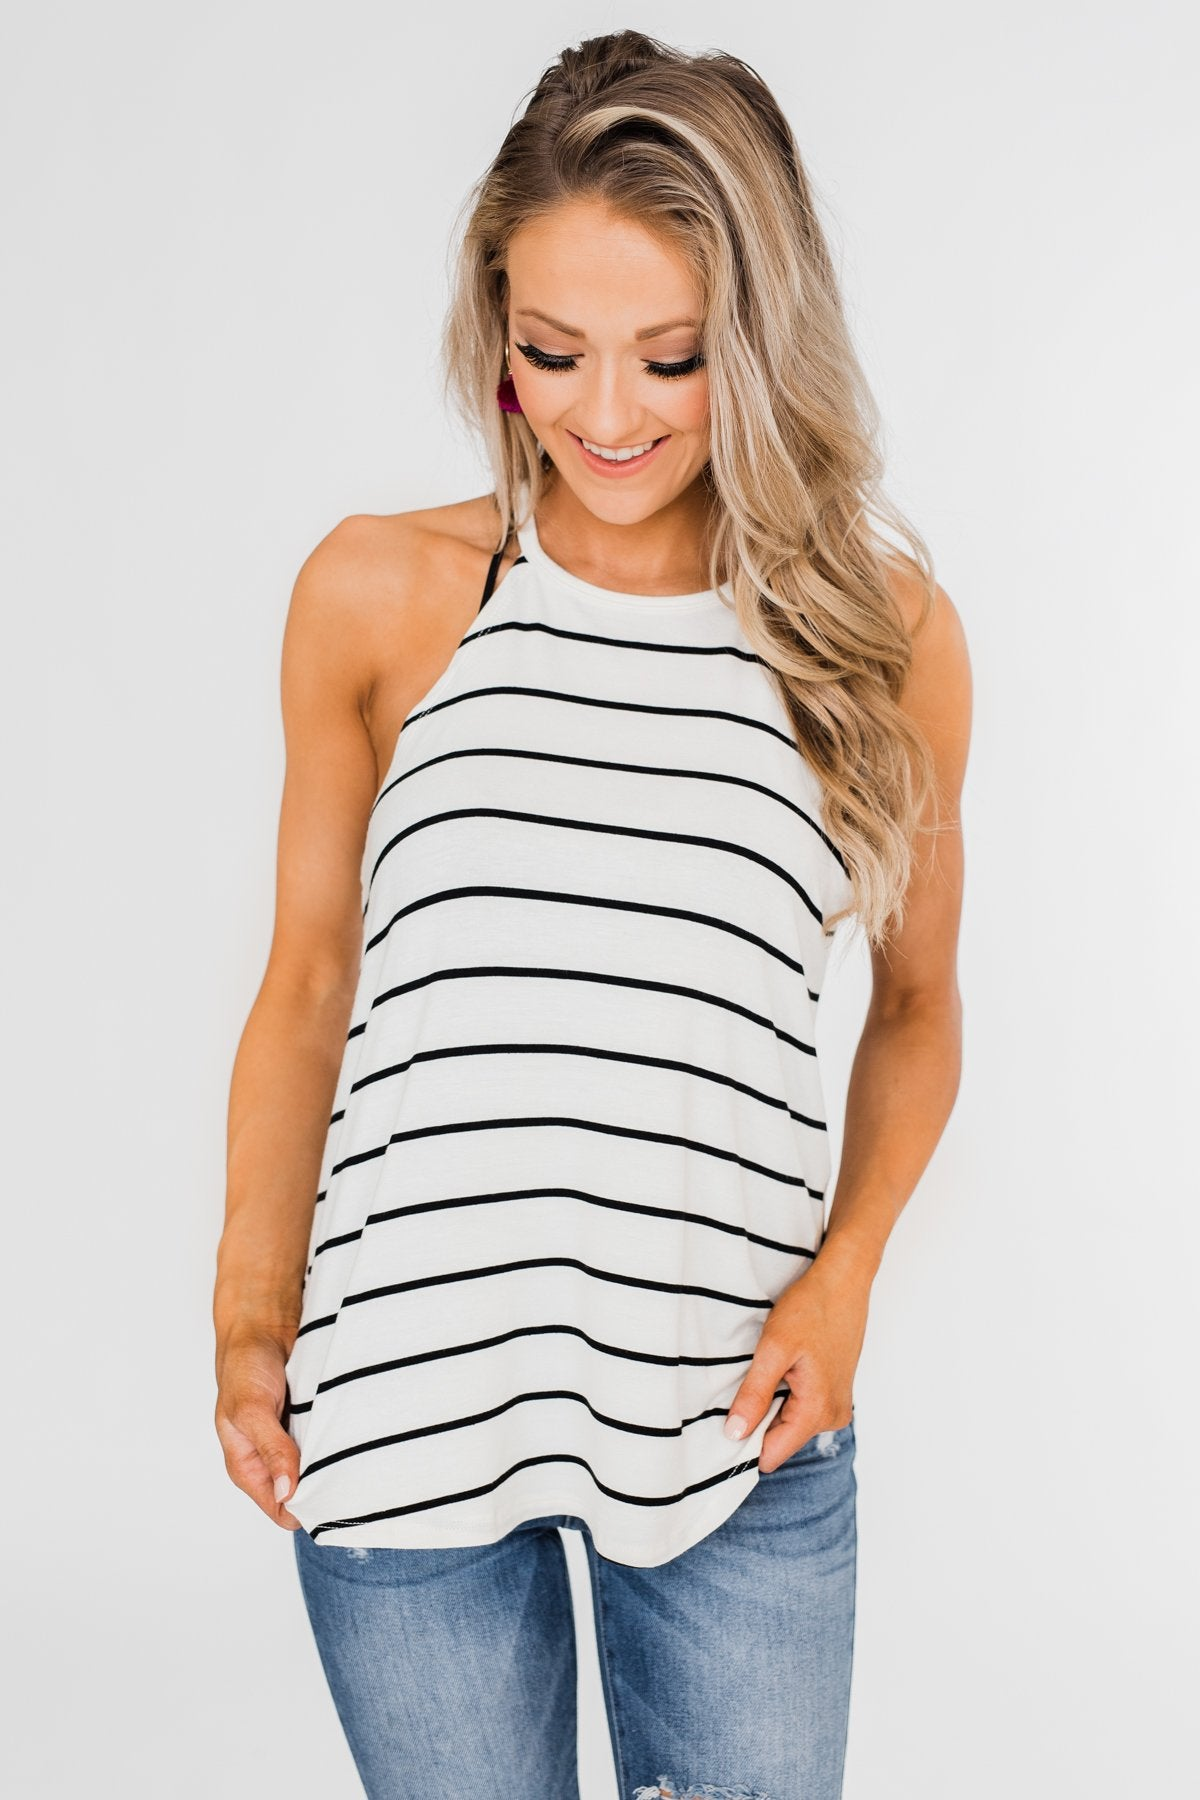 Striped Halter Tank Top- Ivory